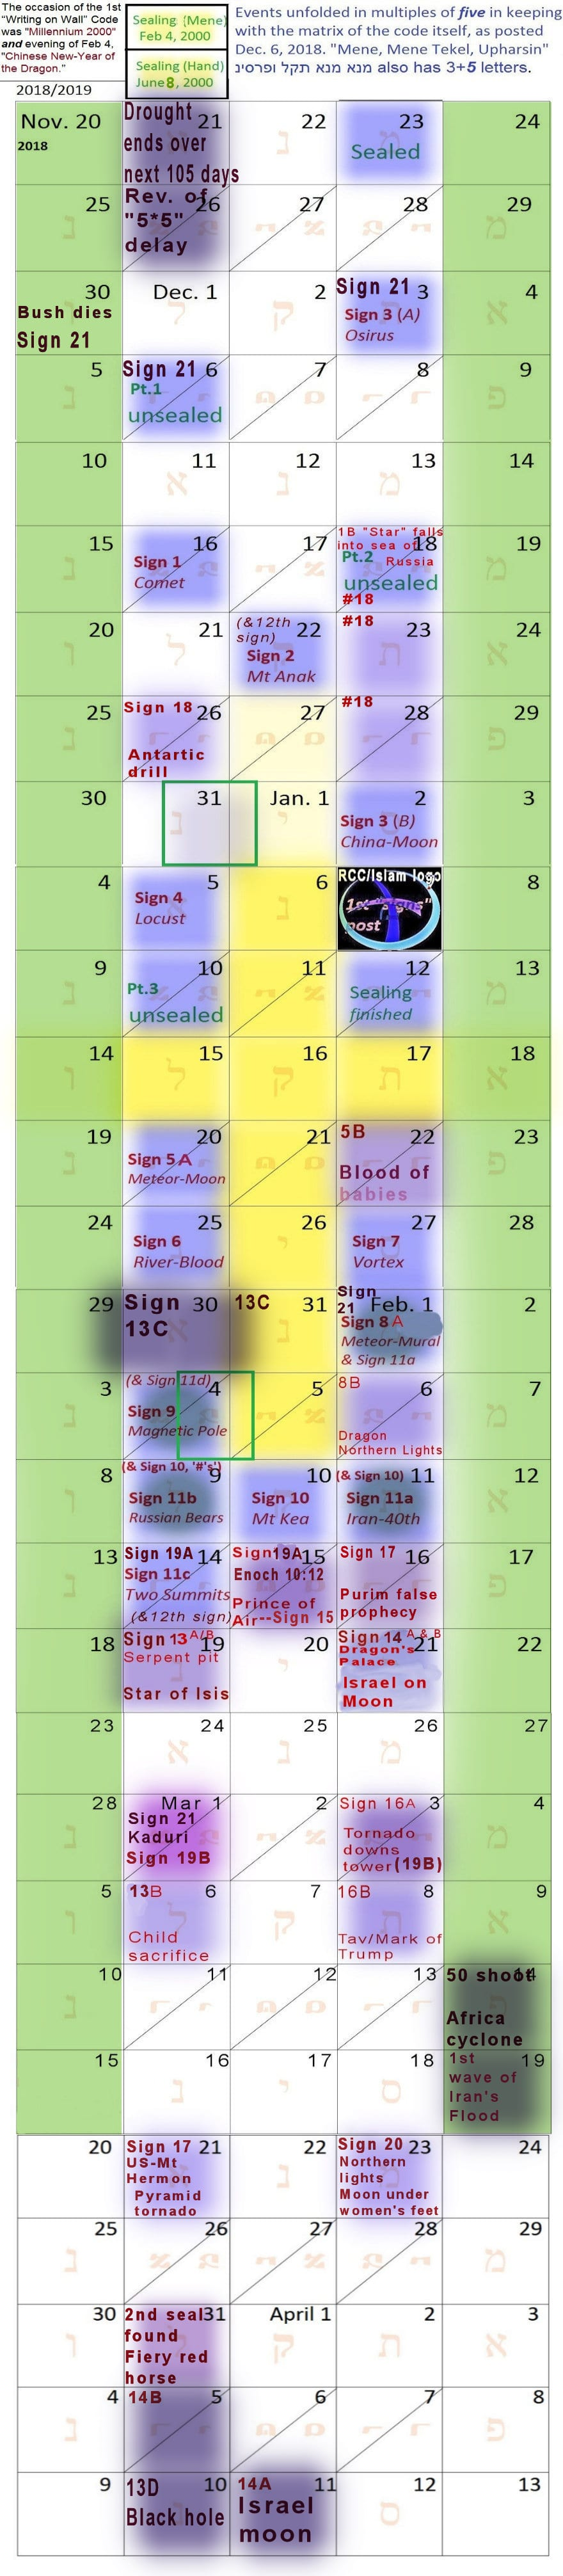 Calendar of Signs and Wonders that happened after the Mene Tekel code